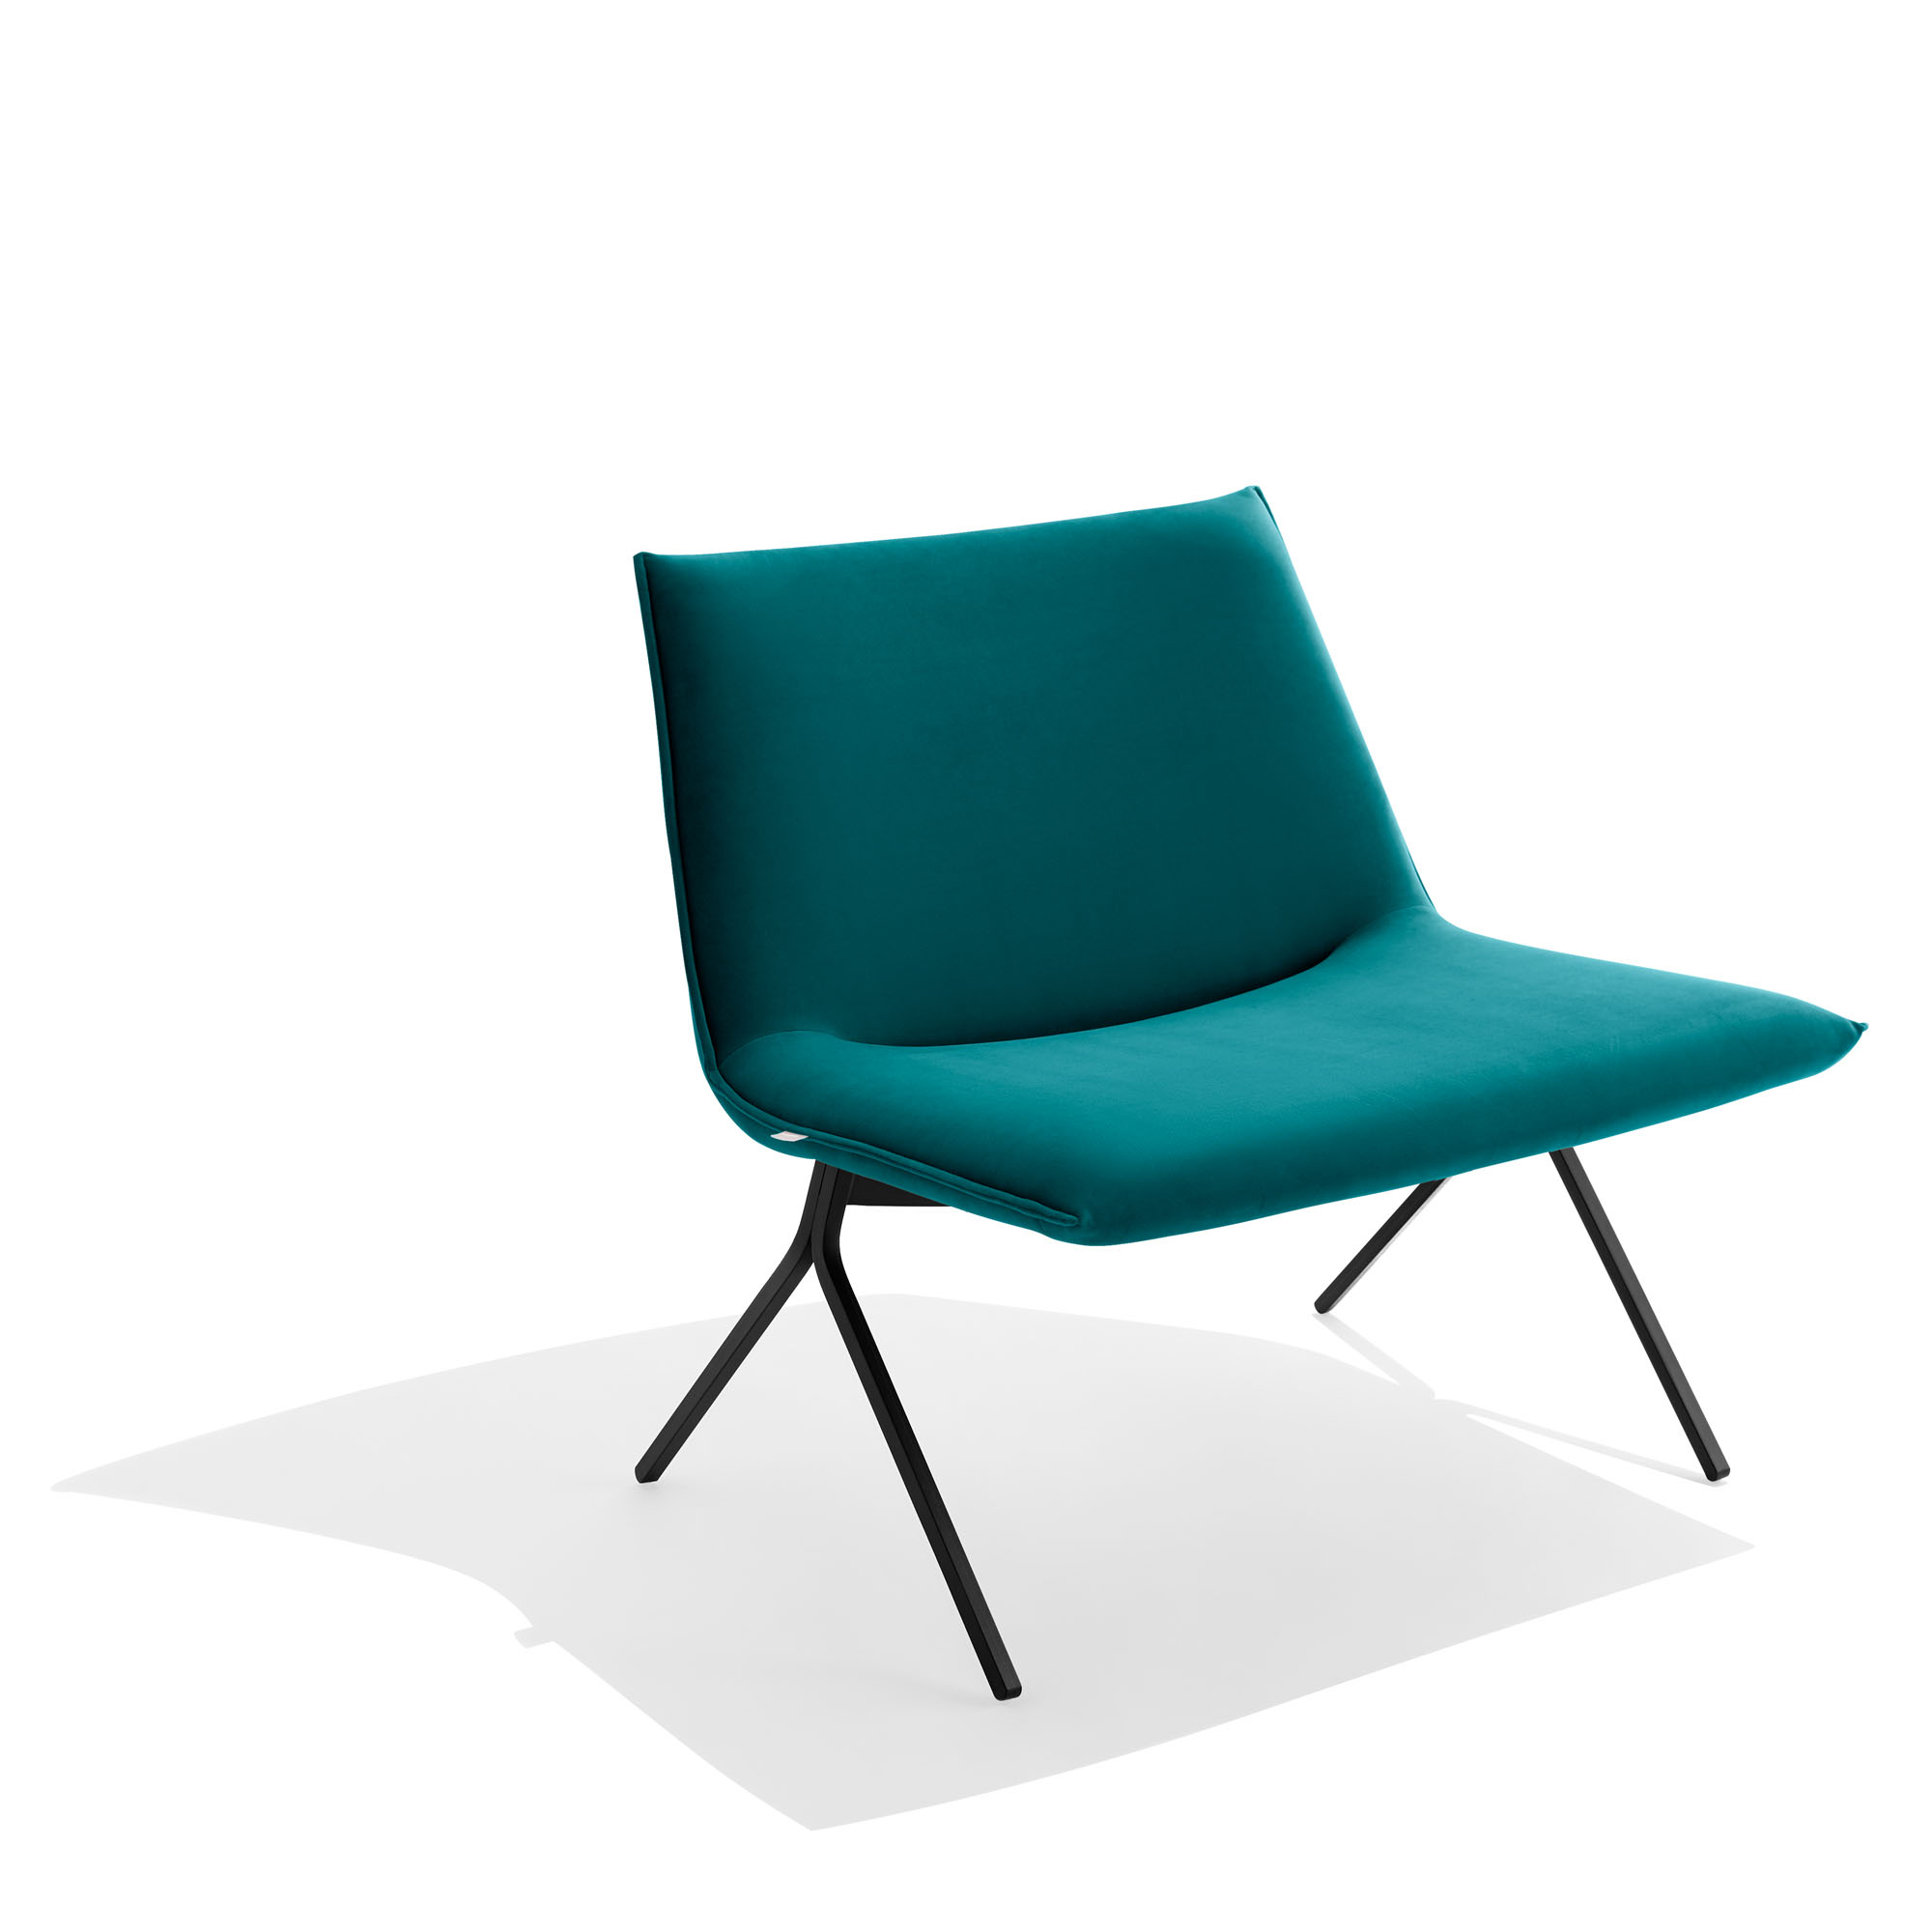 Tremendous Velvet Meredith Lounge Chair Modern Office Furniture Poppin Gmtry Best Dining Table And Chair Ideas Images Gmtryco